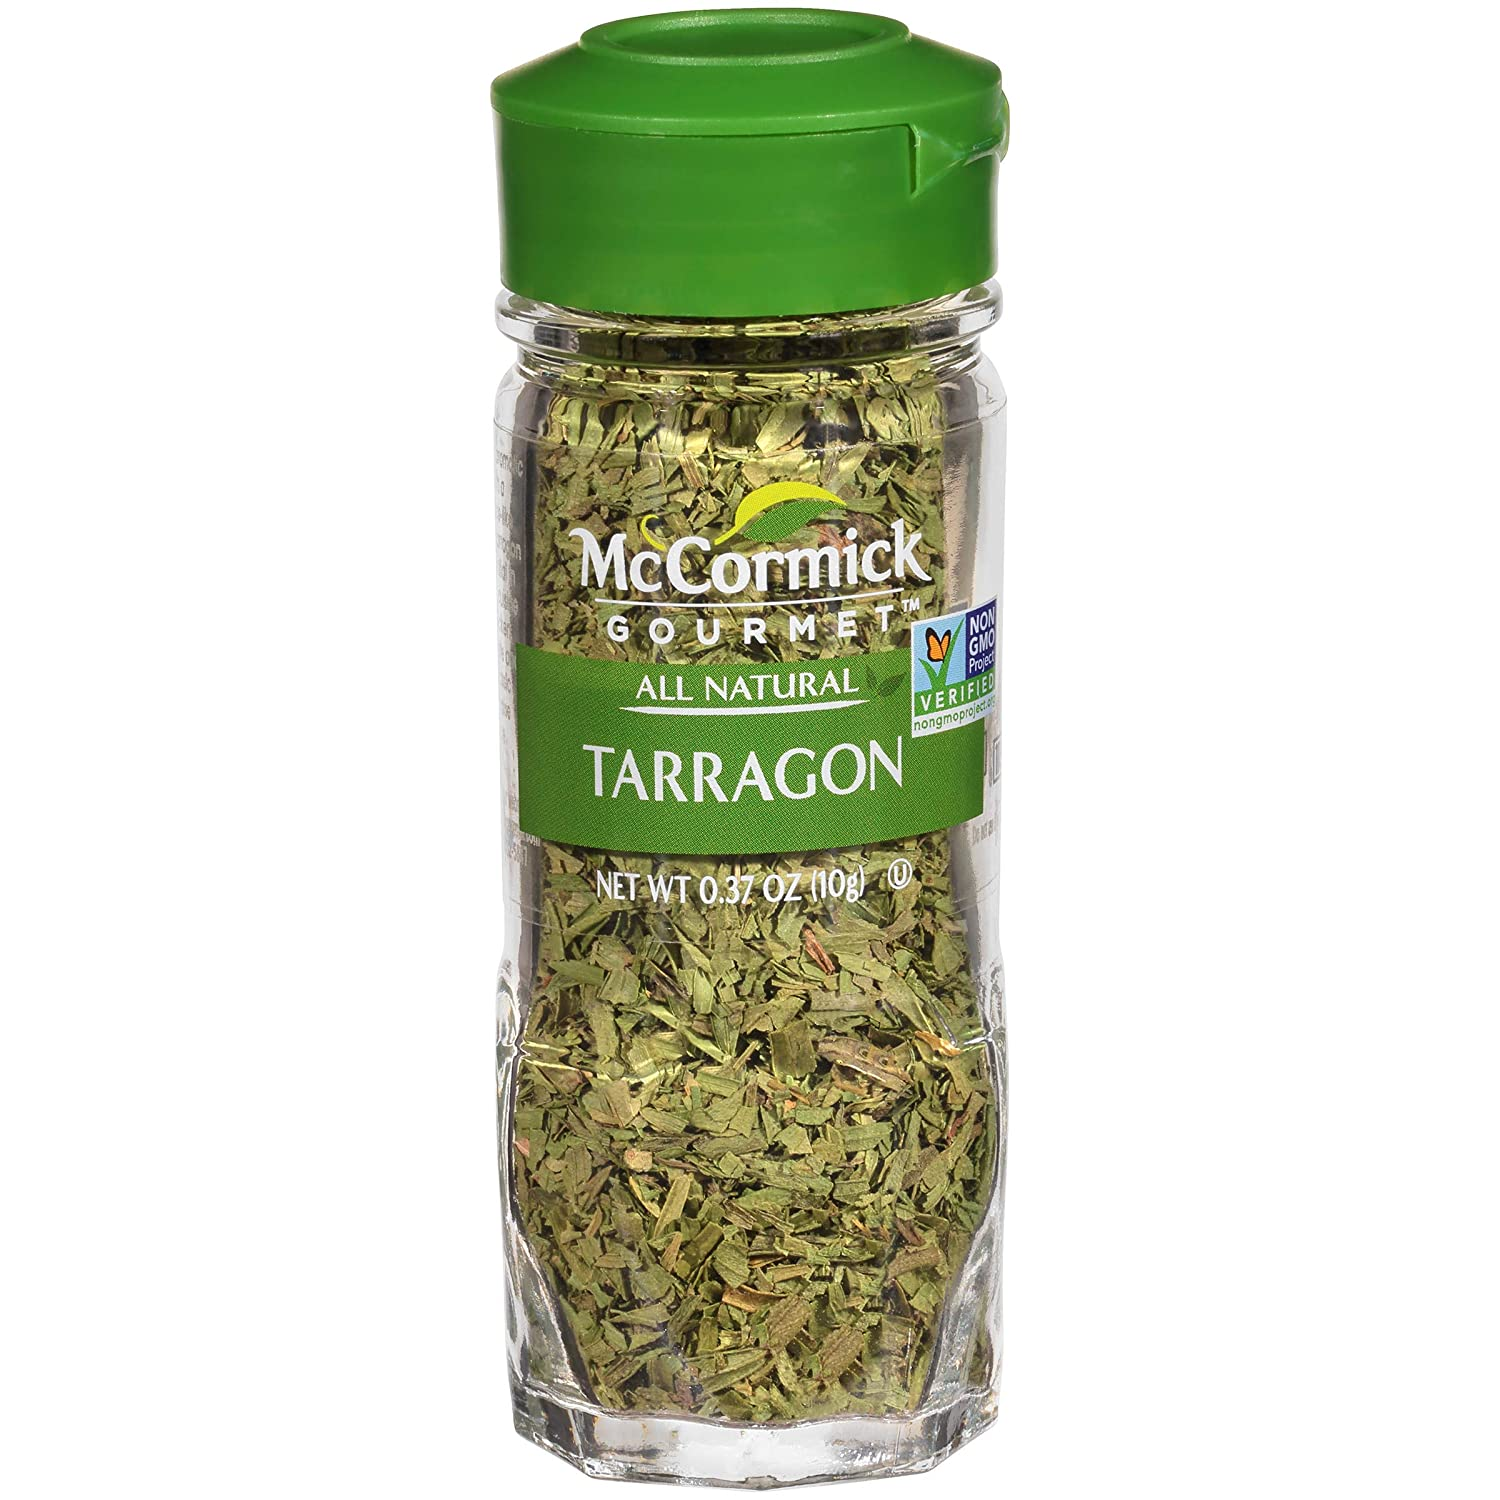 McCormick Gourmet All Natural Tarragon, 0.37 oz